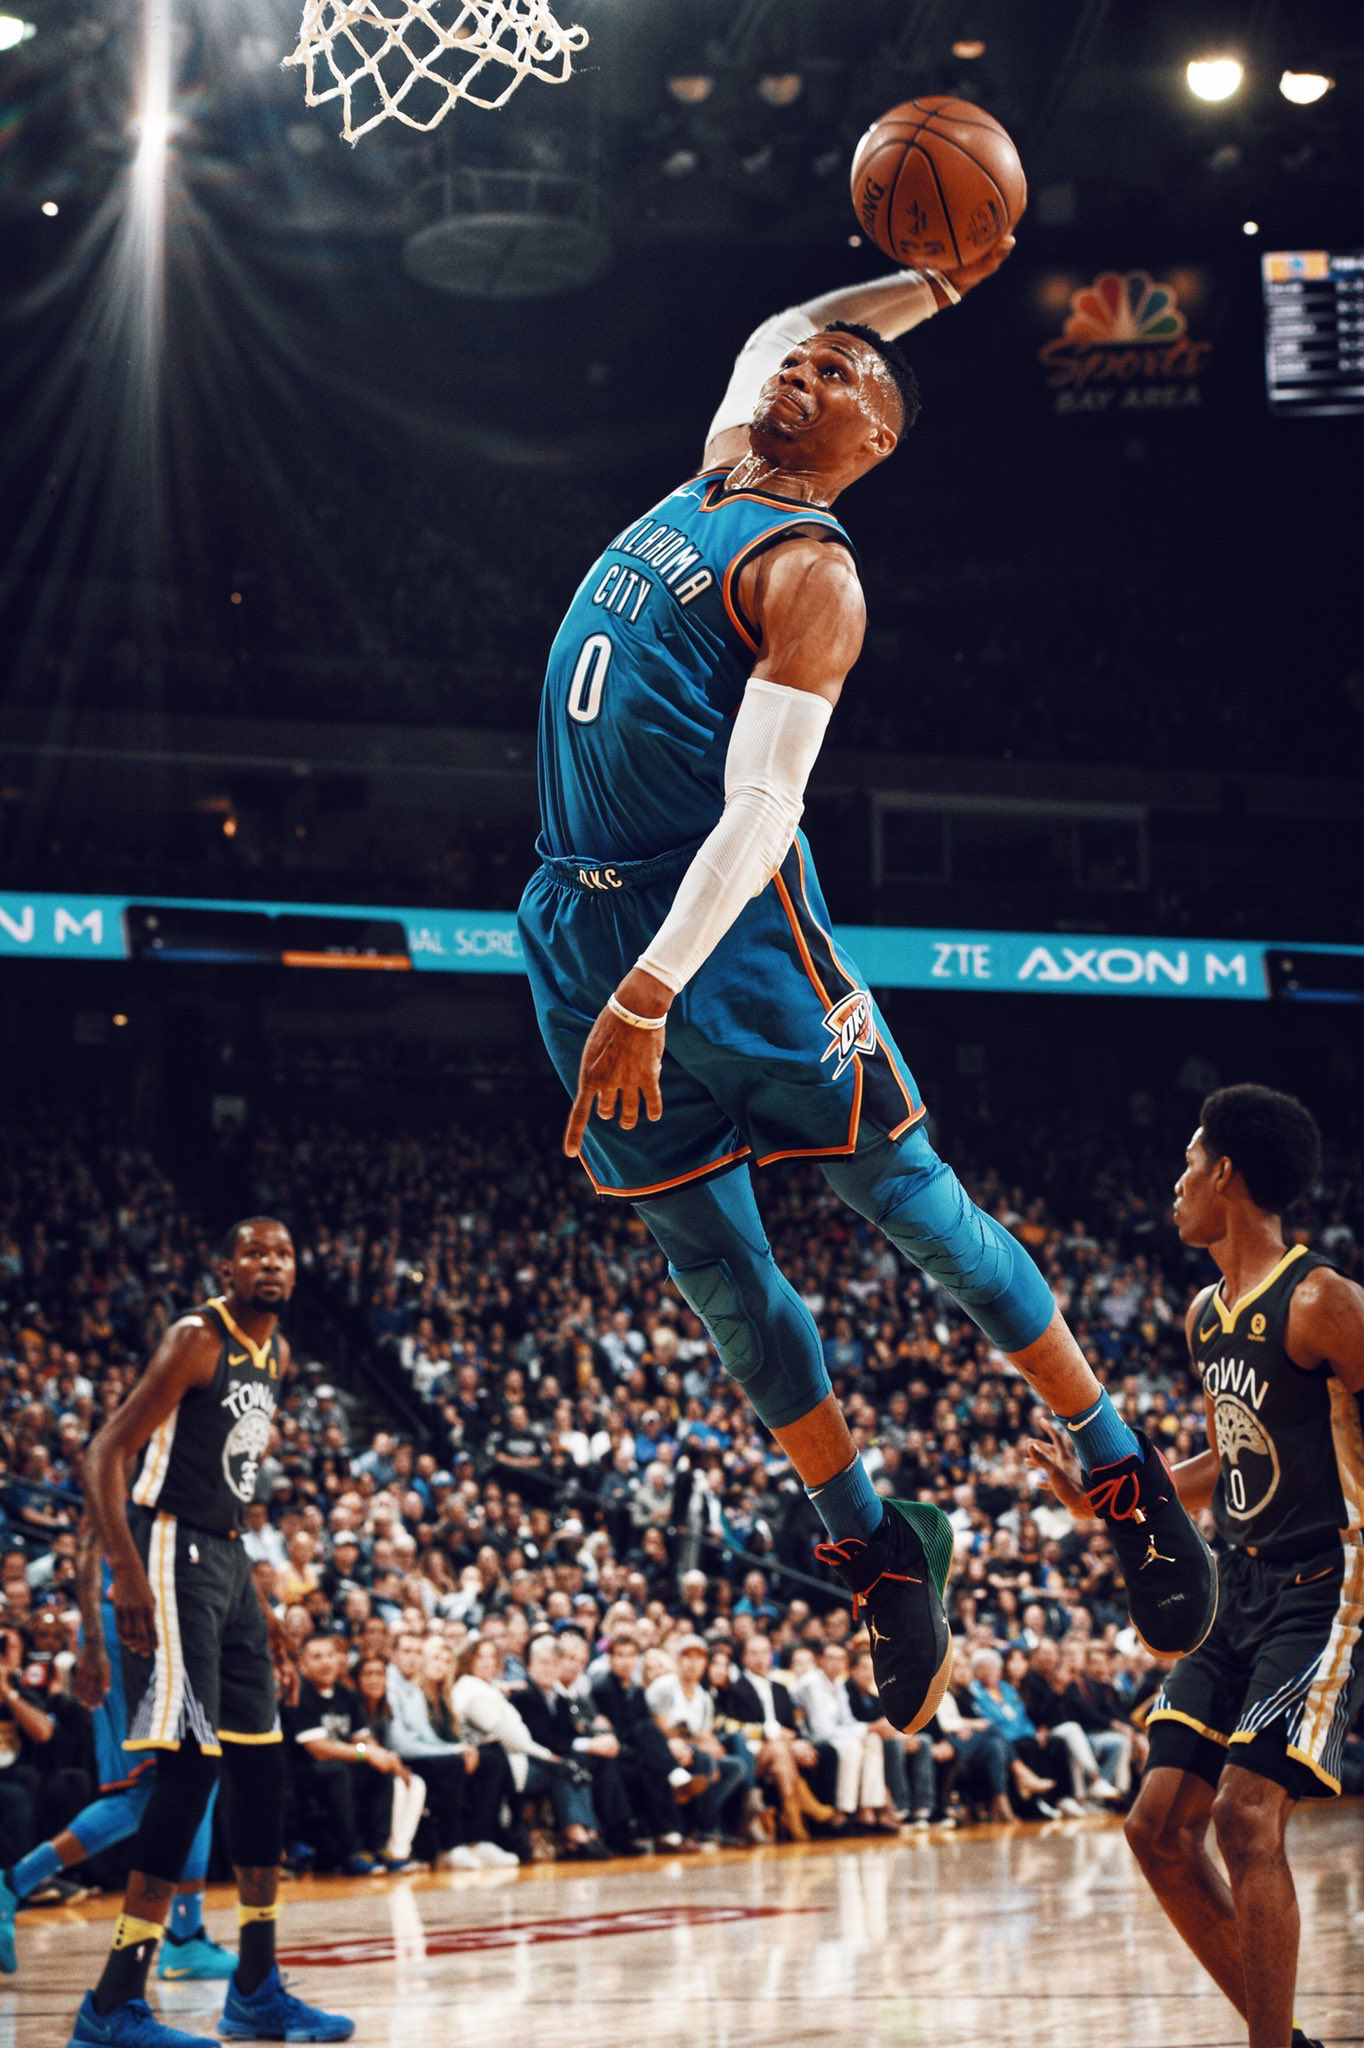 25e72b5aab5 Westbrook can fly! 2.6.18 | Russell Westbrook | Basketball, Nba ...